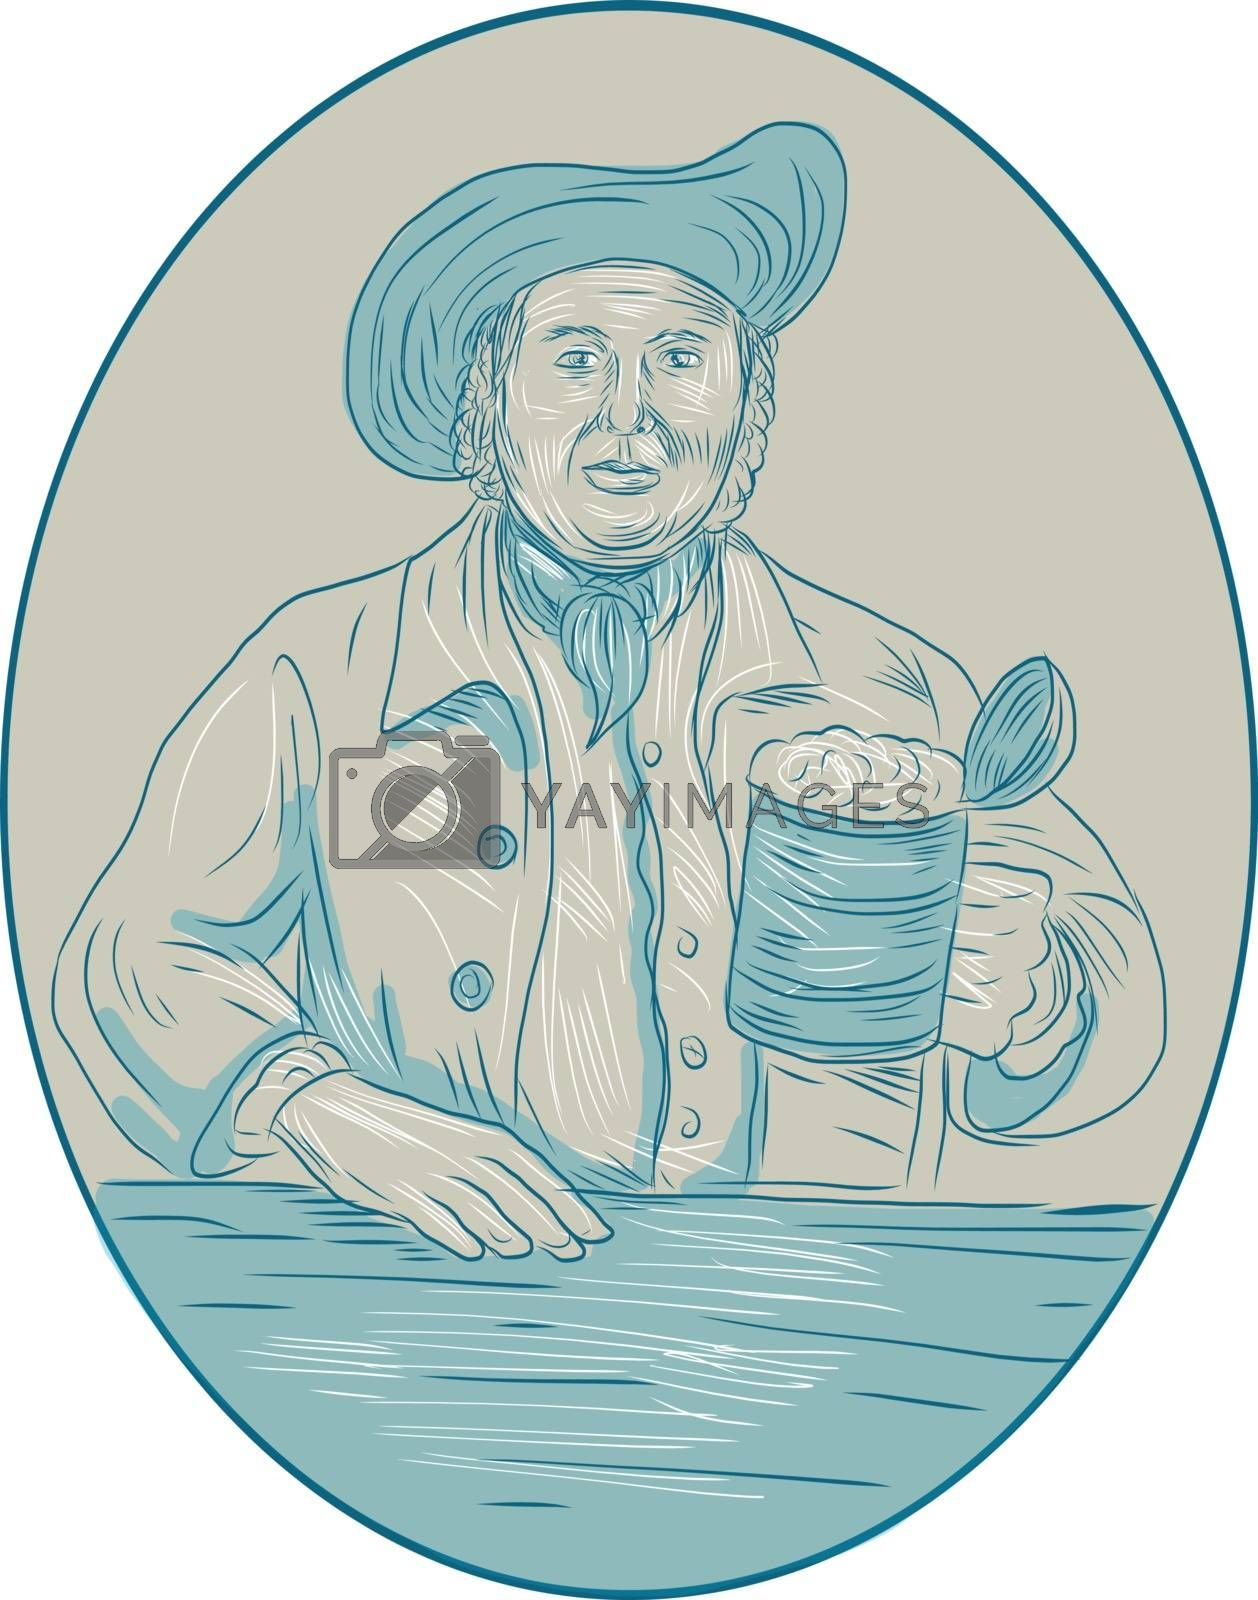 Drawing sketch style illustration of a medieval gentleman beer drinker holding tankard set inside oval shape viewed from front.